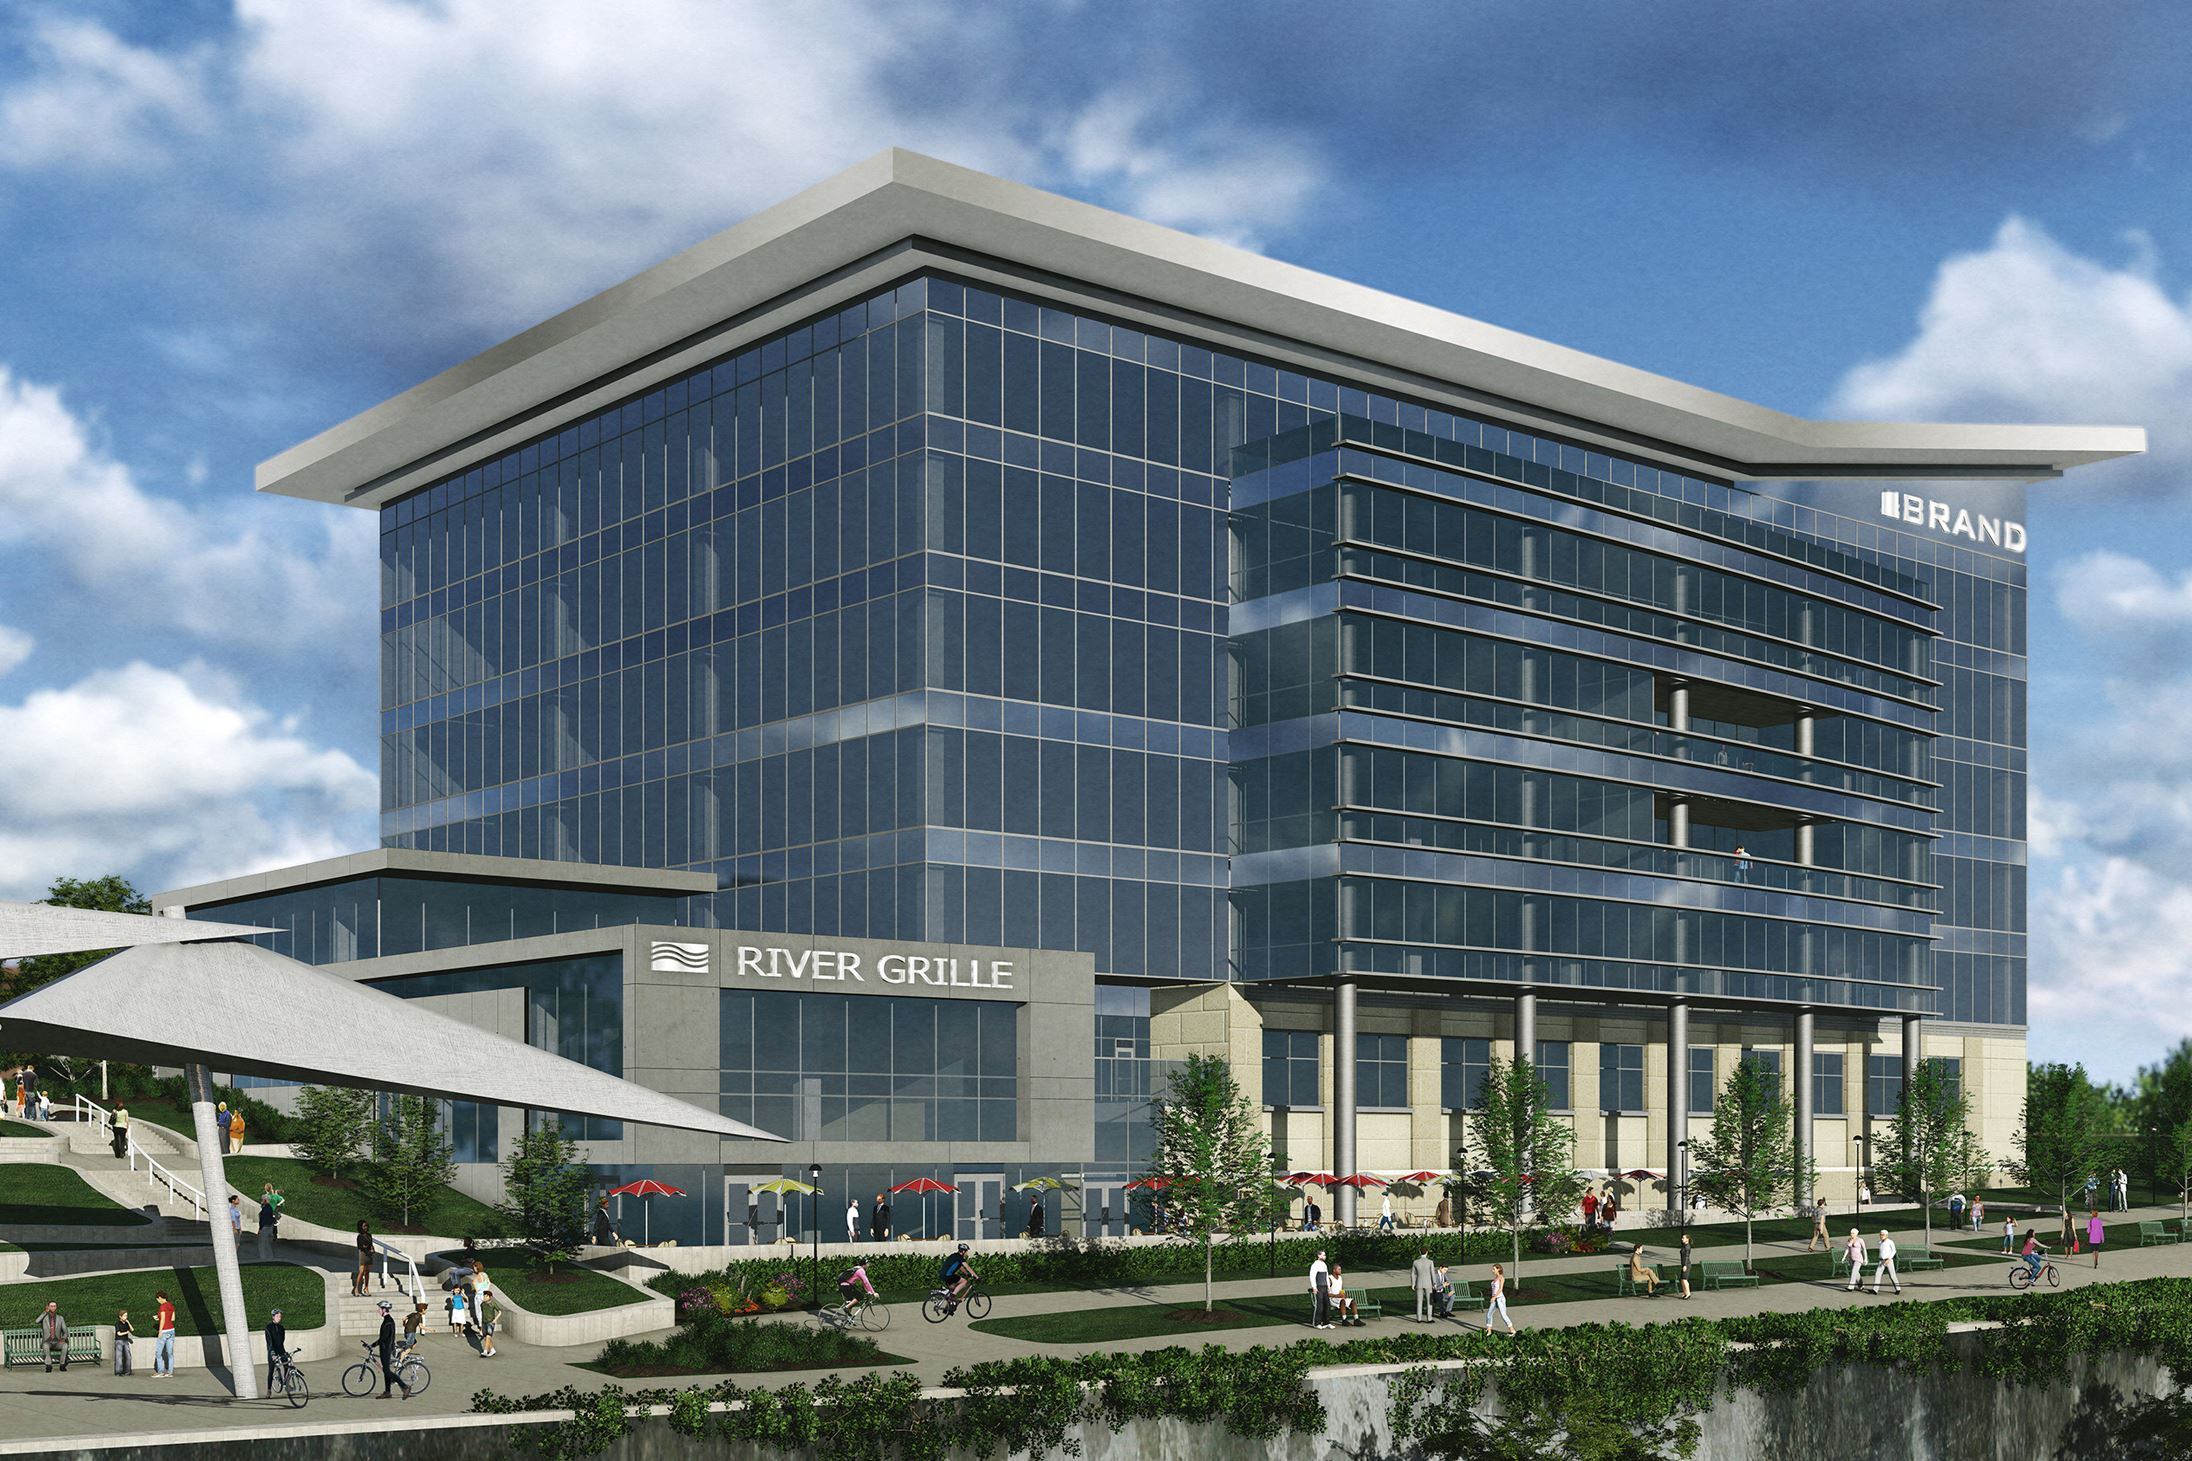 southside raleigh nc based highwoods properties unveiled plans to build an office building with building an office